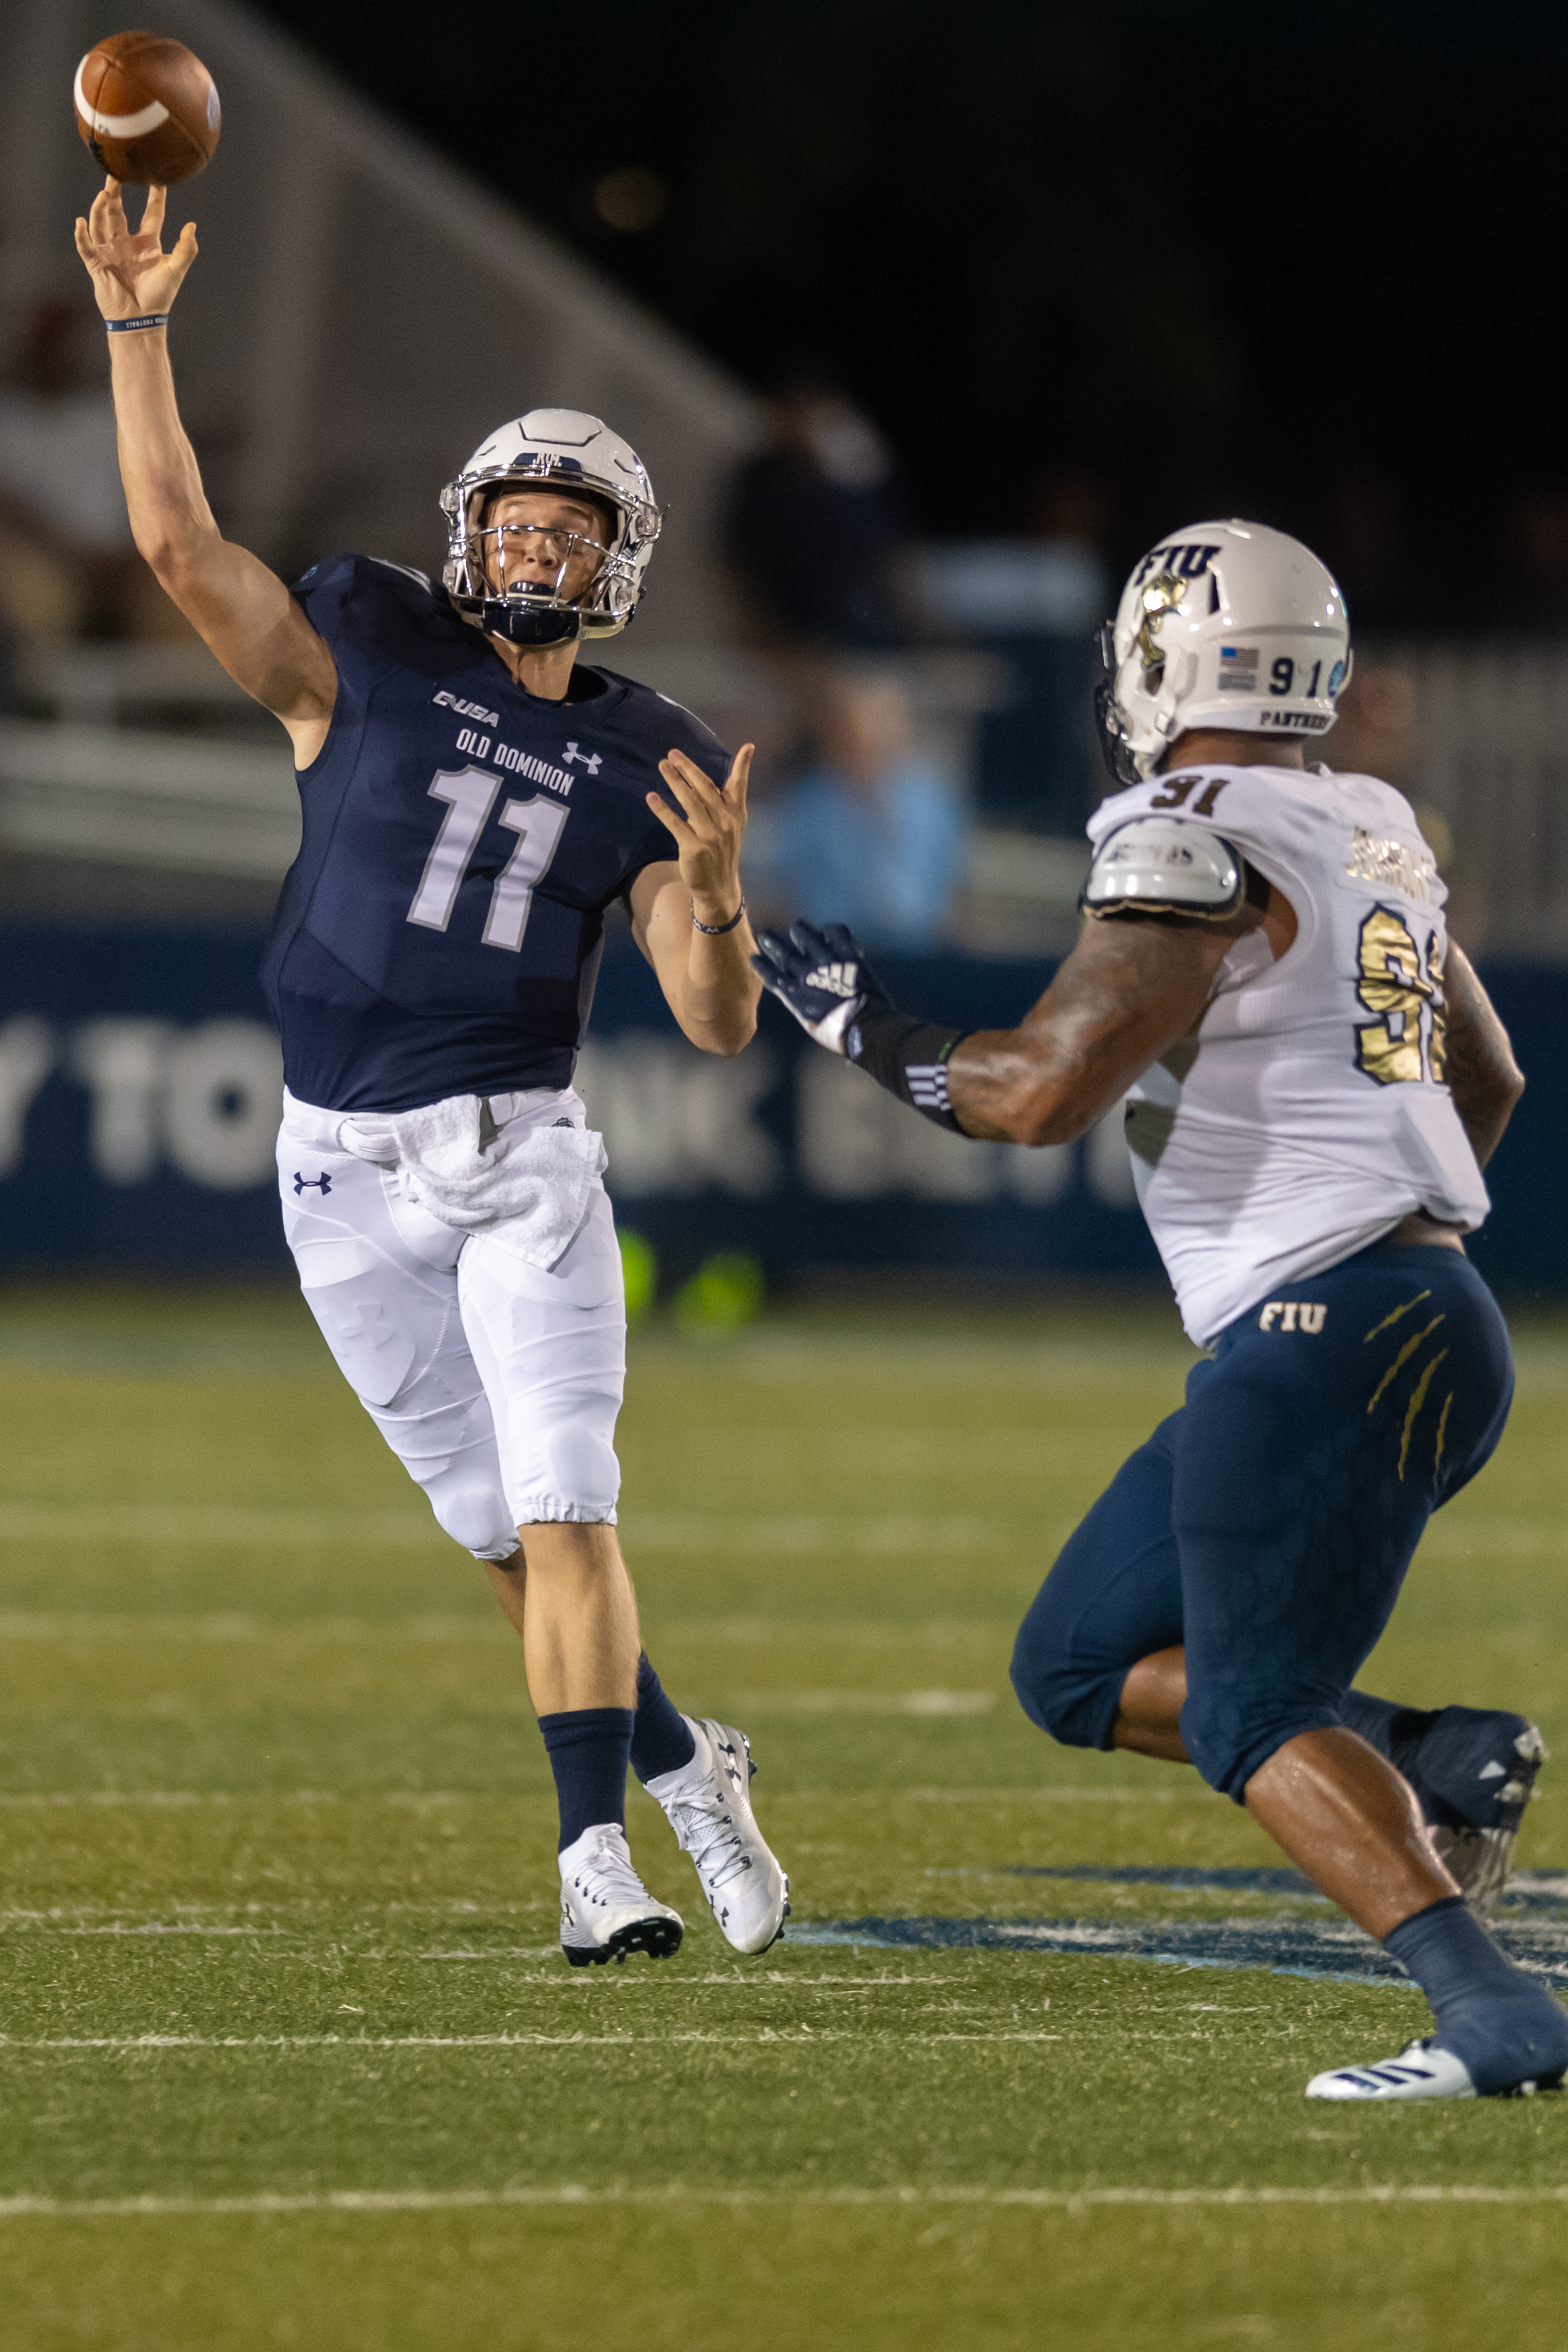 Old Dominion Monarchs quarterback Blake LaRussa (11) makes a pass under pressure from FIU Panthers defensive lineman Anthony Johnson (91) during the Saturday, Sept. 8, 2018 game held at Old Dominion University in Norfolk, Virginia. The Monarchs lead 14 to 0 during the second quarter.